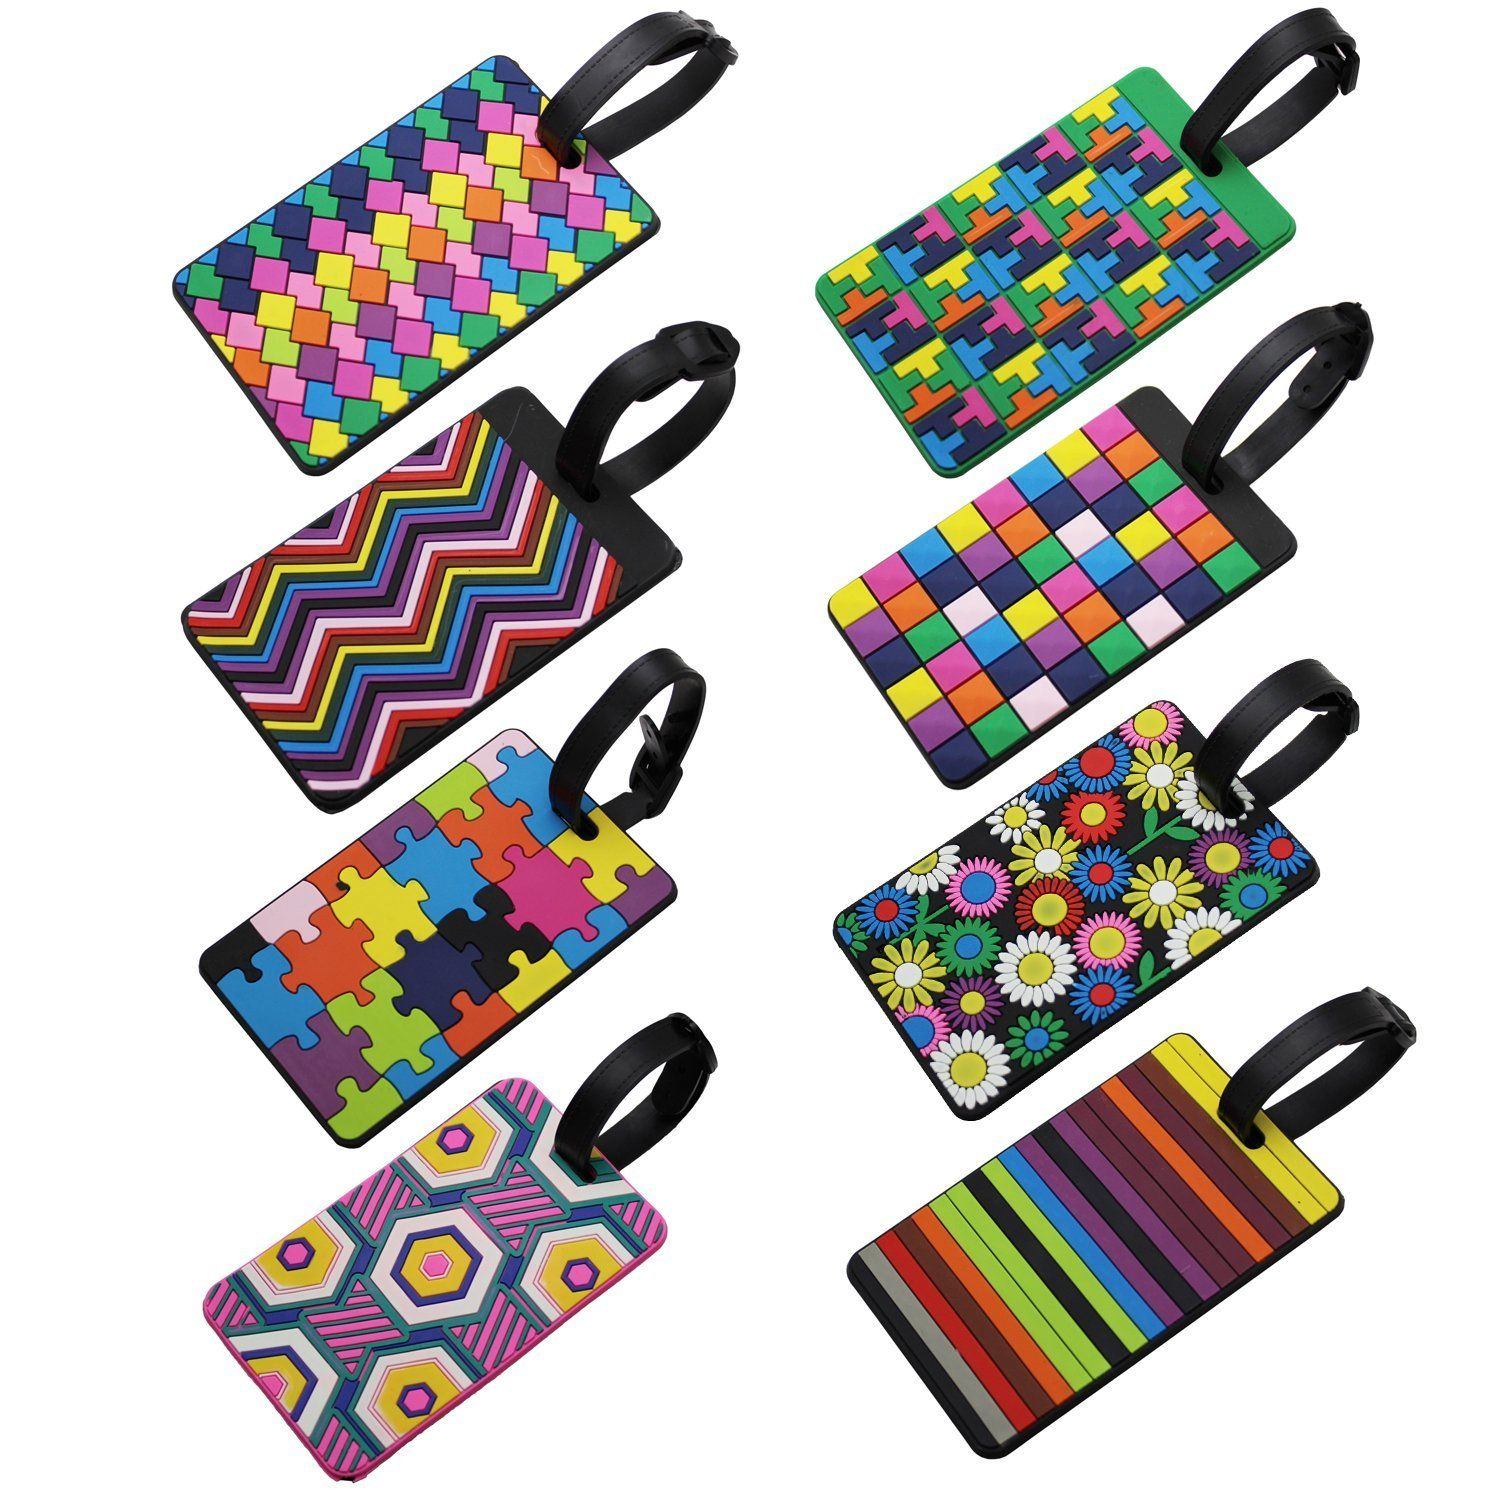 ljy tech inc introduces luggage tags color coding labels for